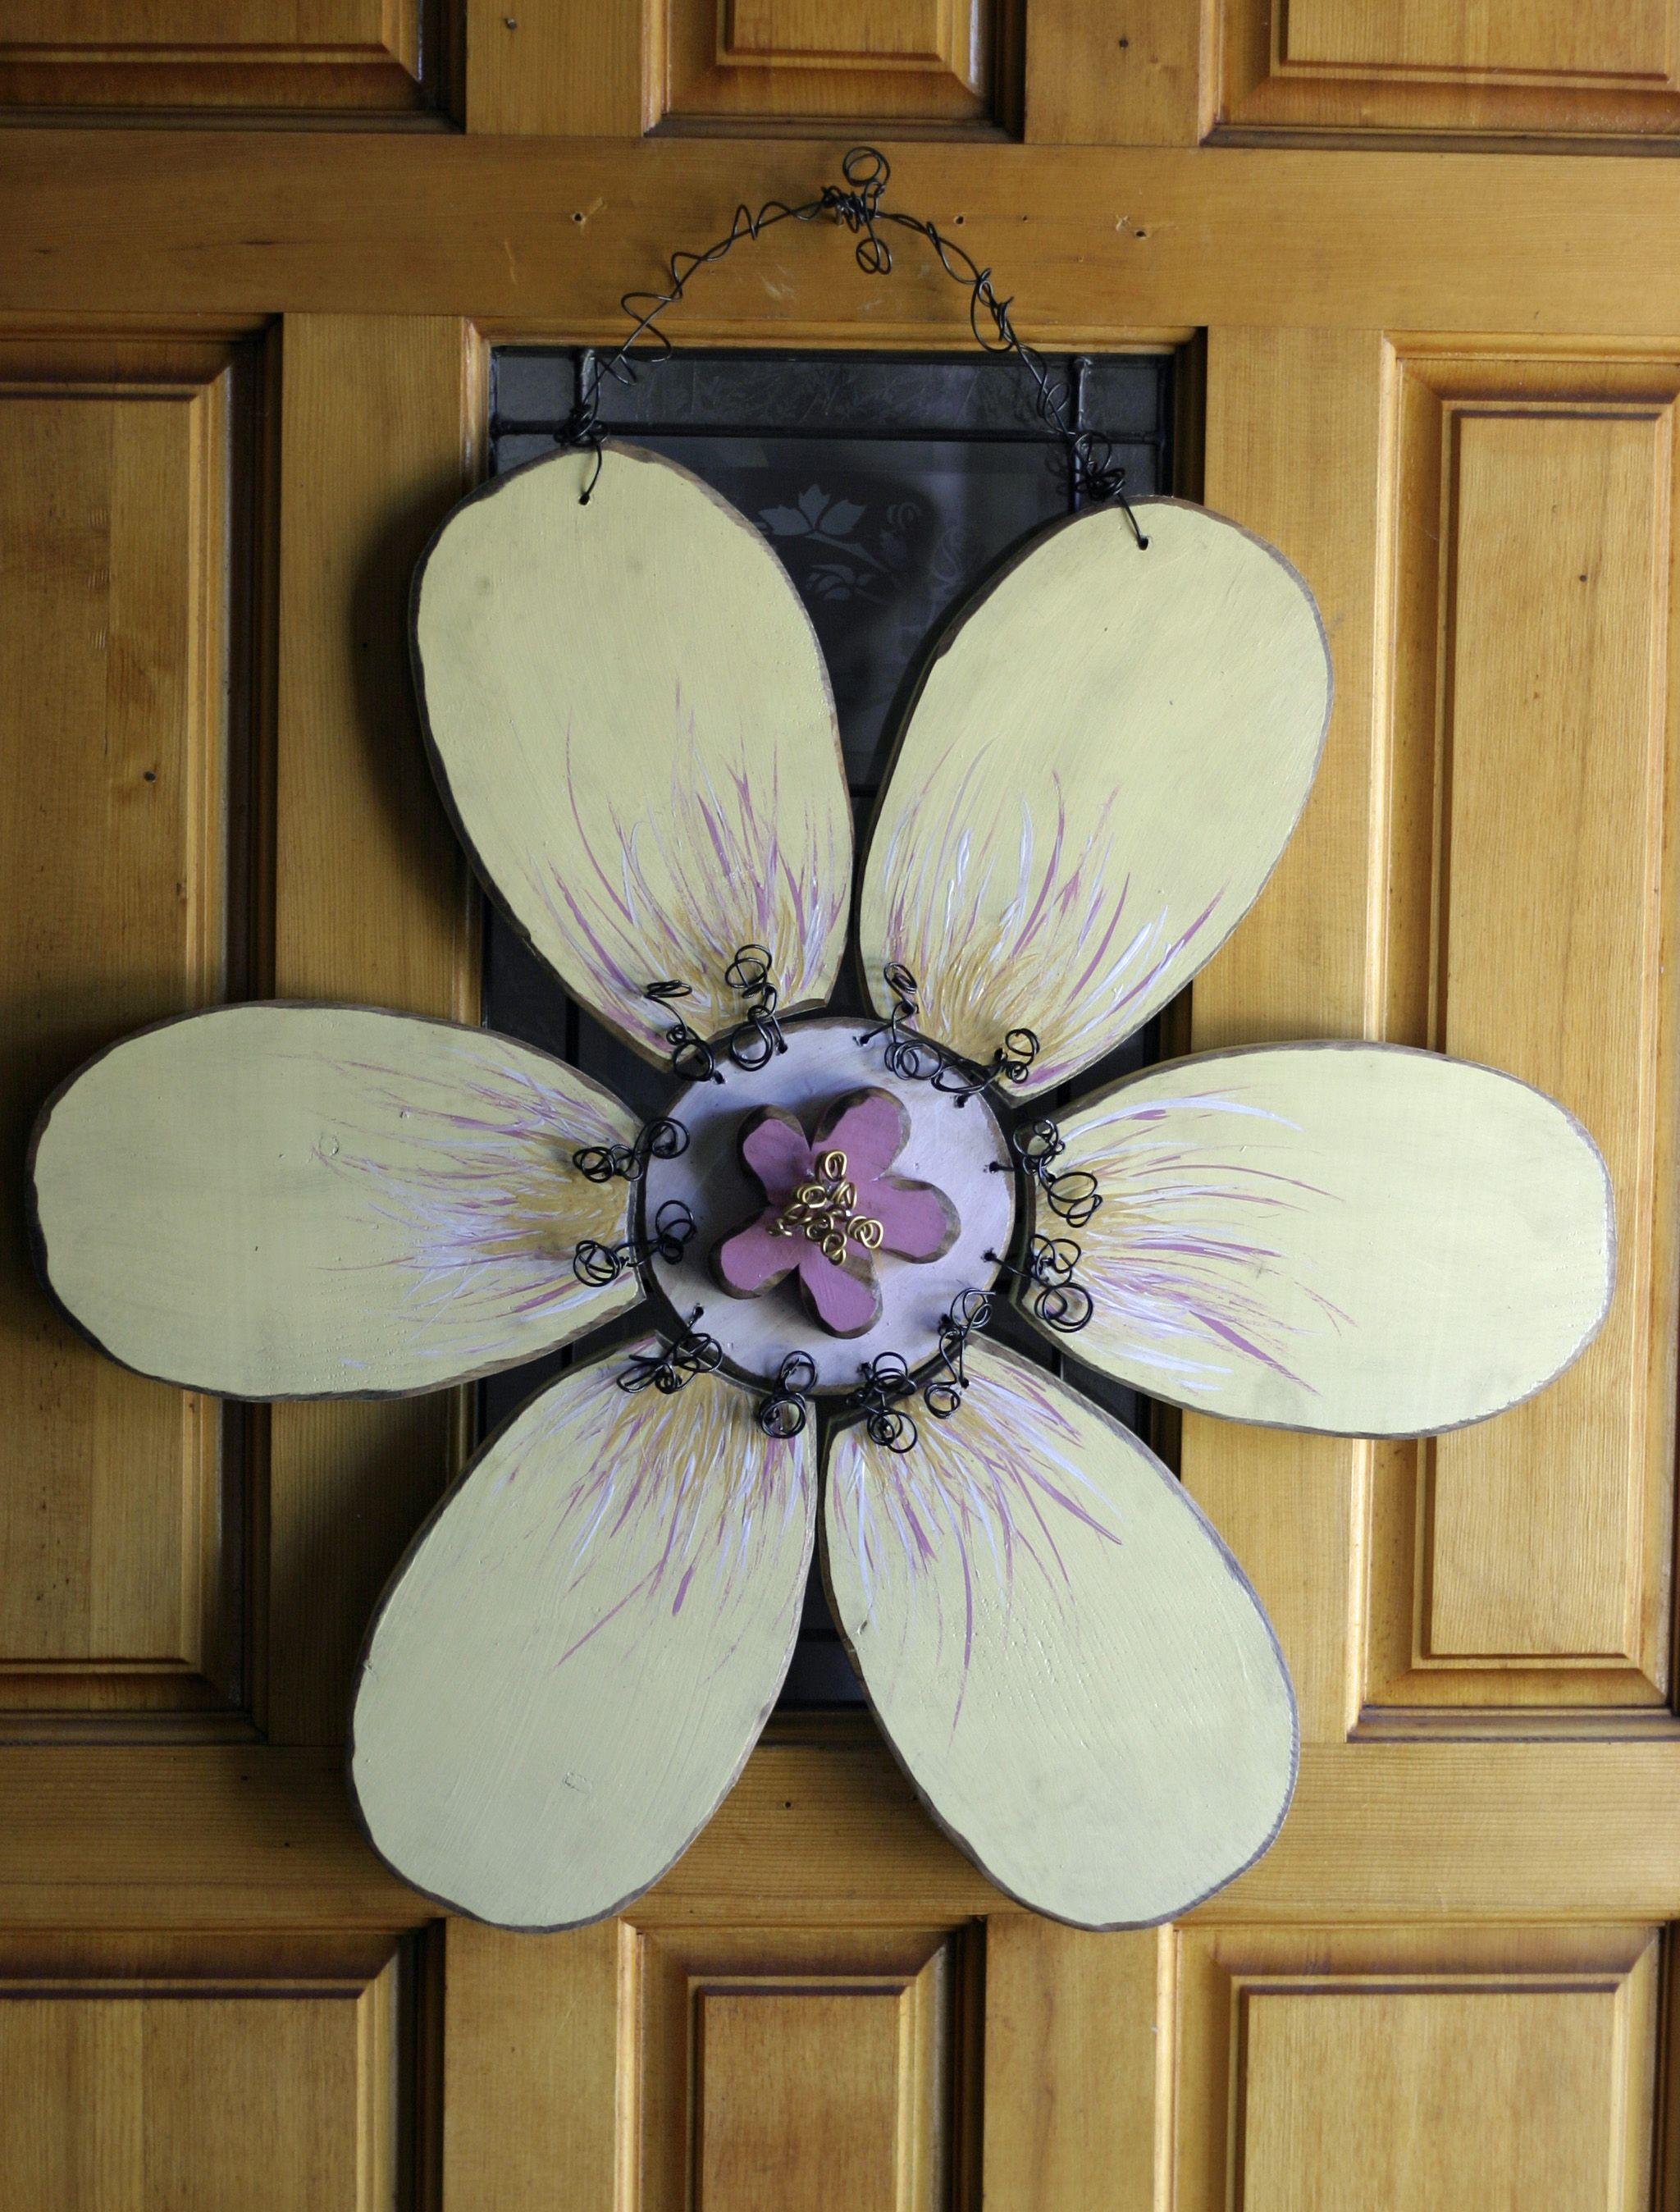 White Flower Ceiling Fan Large White Flower Door Hanger Working With Wood